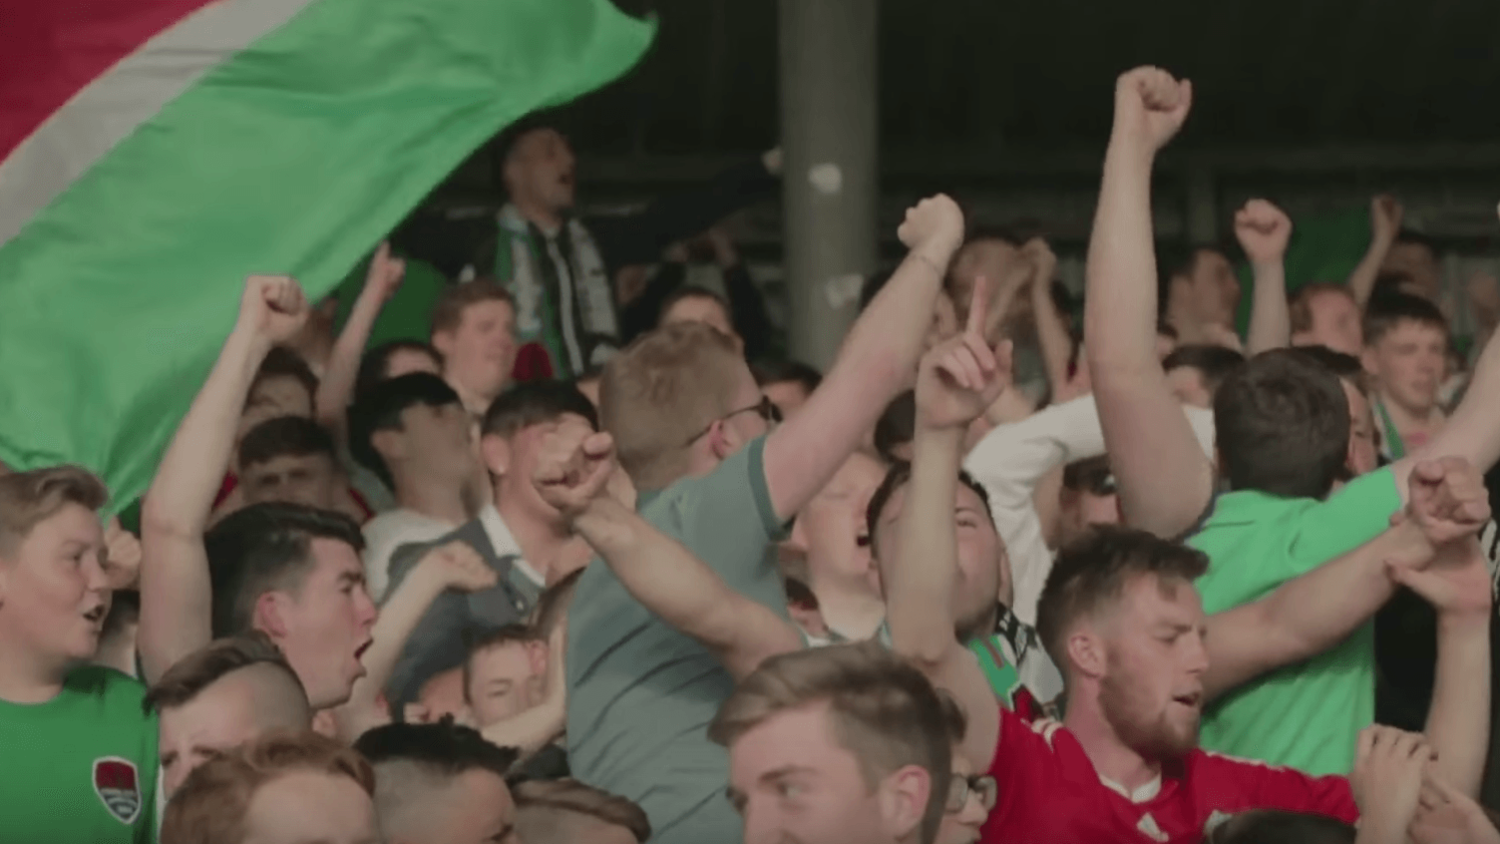 WATCH: 6 Clubs You Have To Visit Before You Die